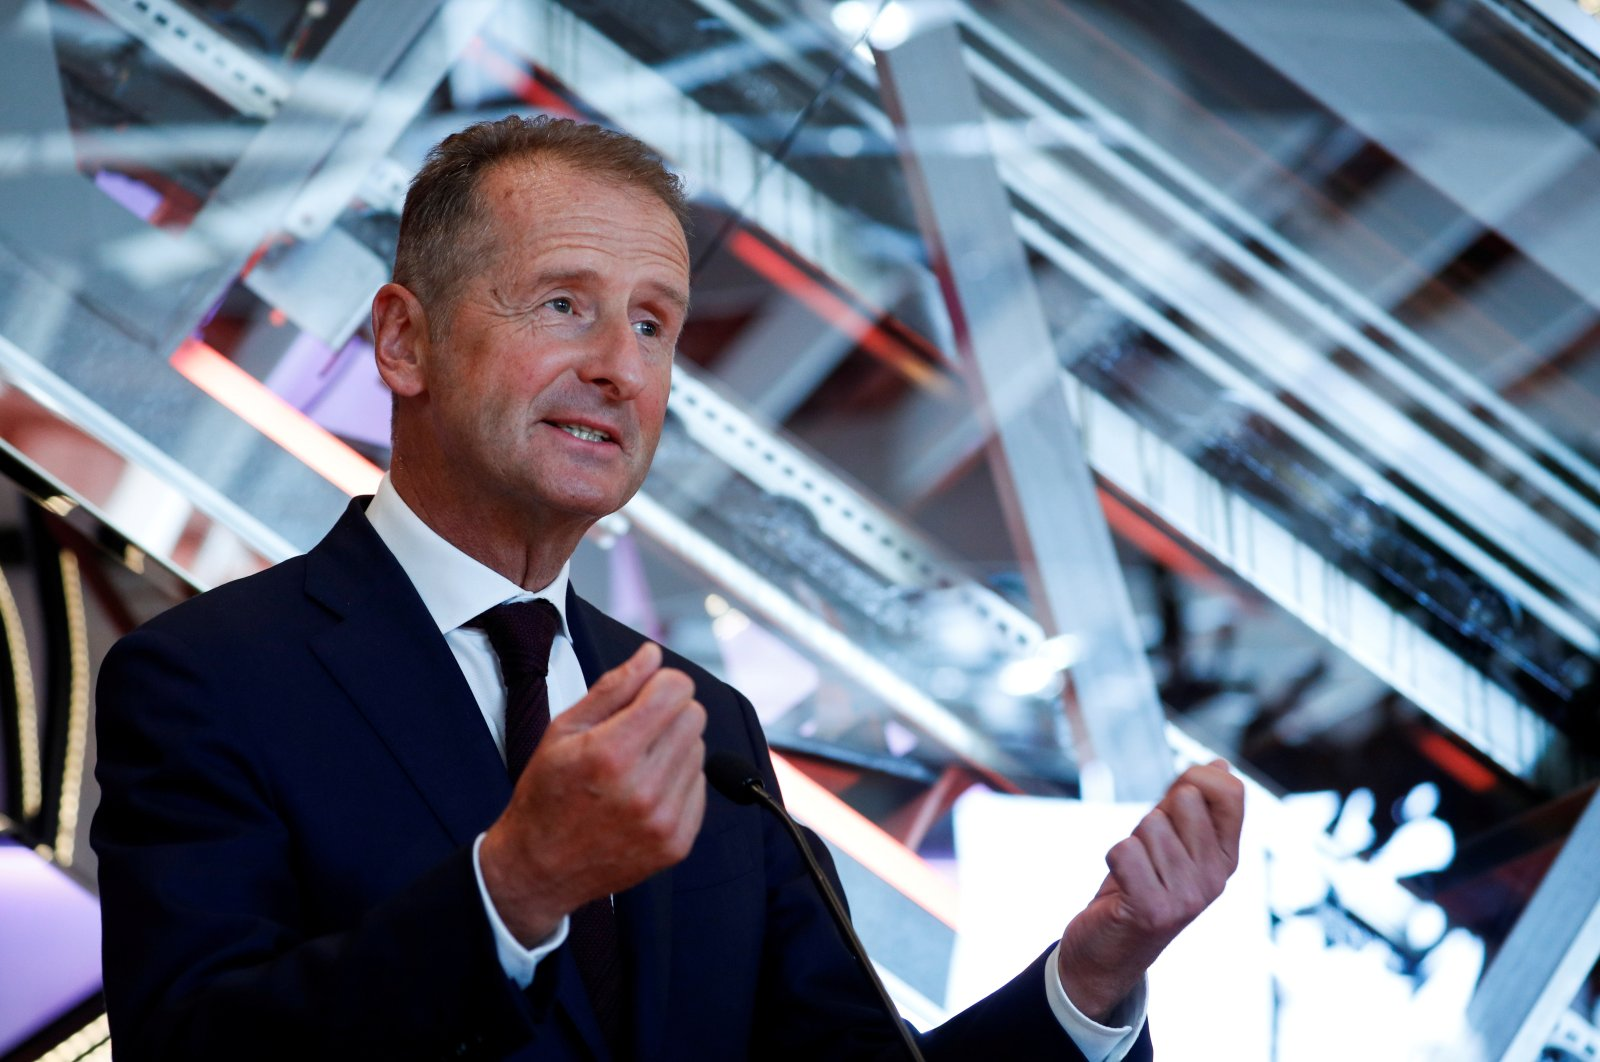 Volkswagen Group CEO Herbert Diess gestures as he speaks during a news conference to announce the appointment of Wayne Griffiths as the new president of Volkswagen's Spanish brand SEAT, in Barcelona, Spain, Sept. 23, 2020. (Reuters Photo)